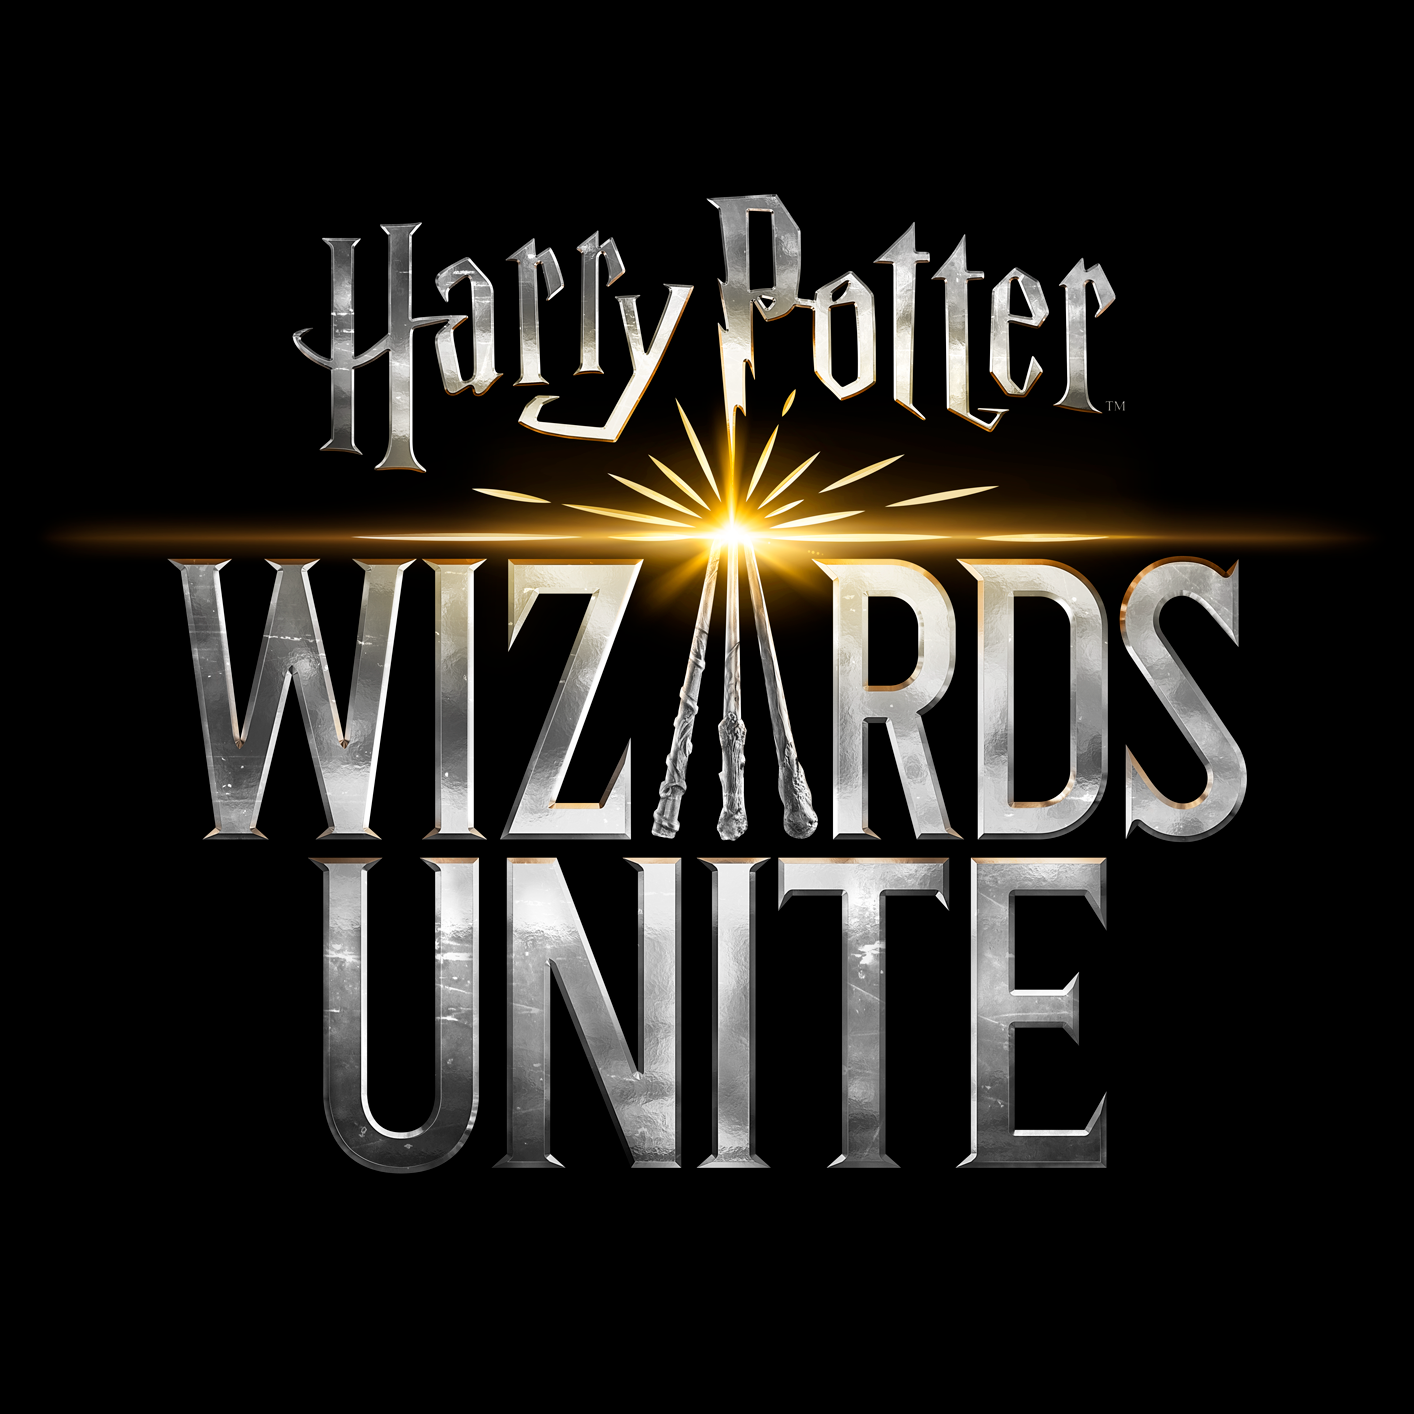 Harry Potter: Wizards Unite game displayed on a smartphone screen